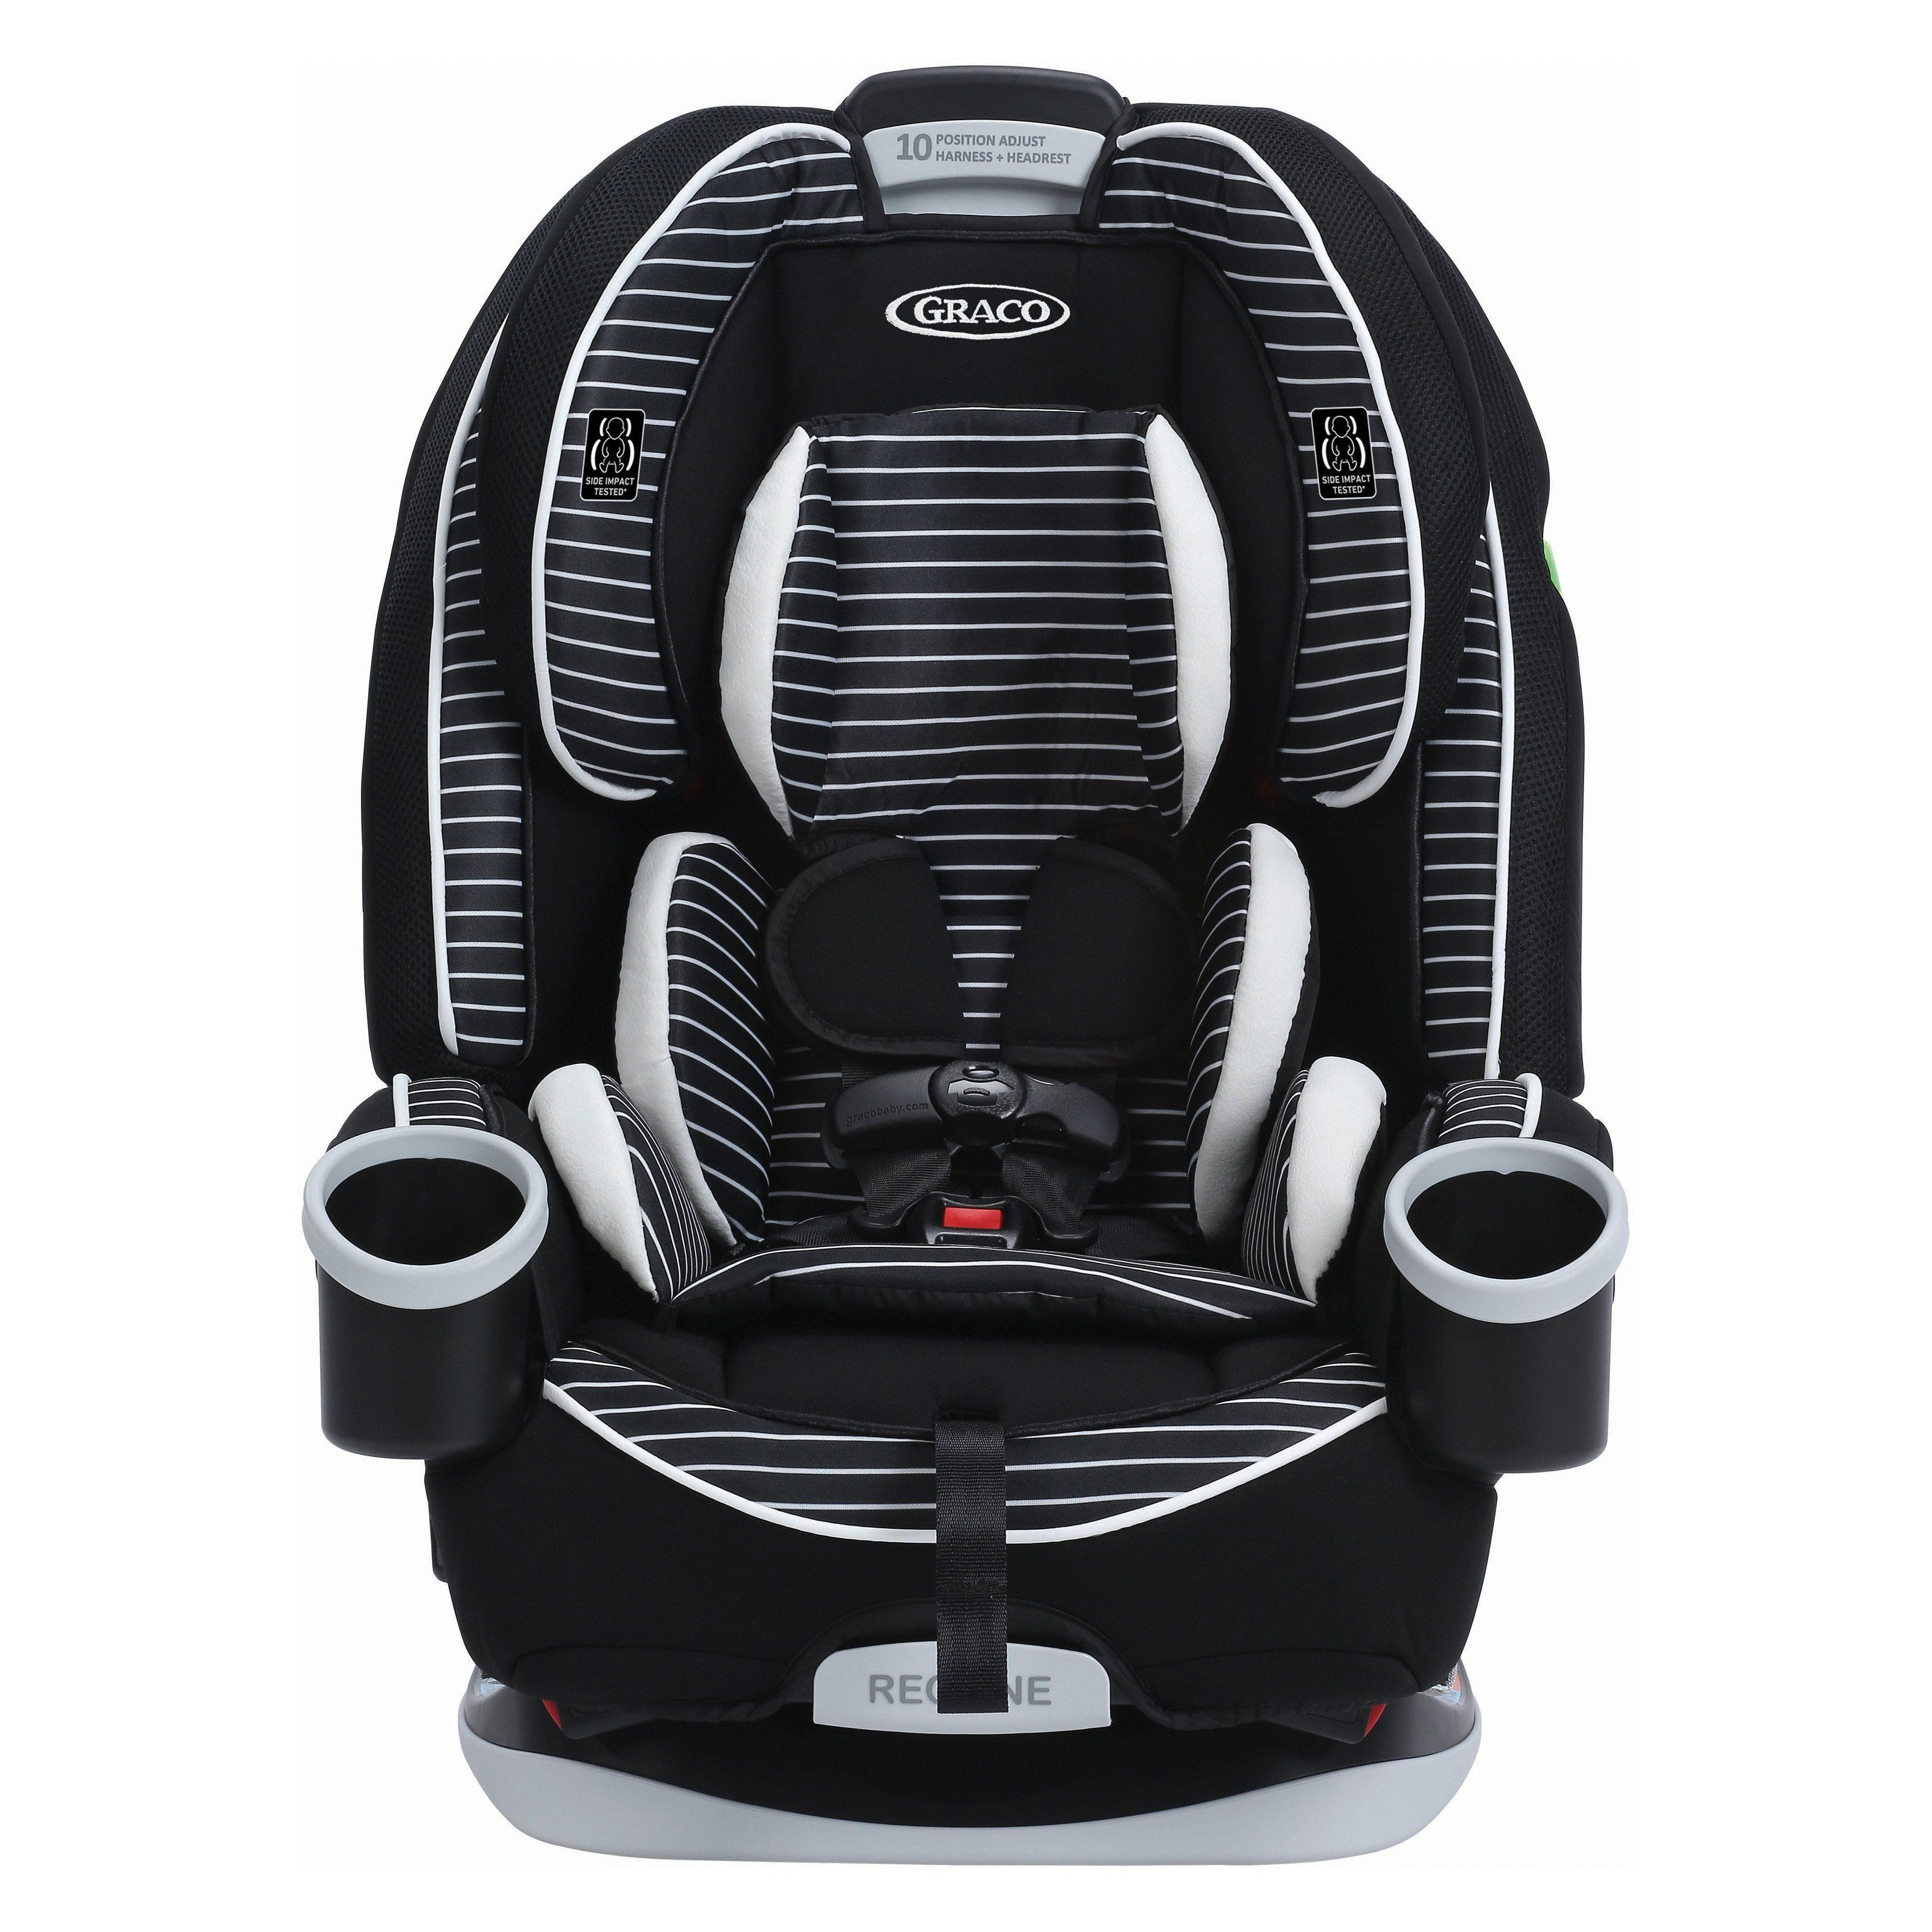 Graco 4Ever All in 1 Car Seat Studio from